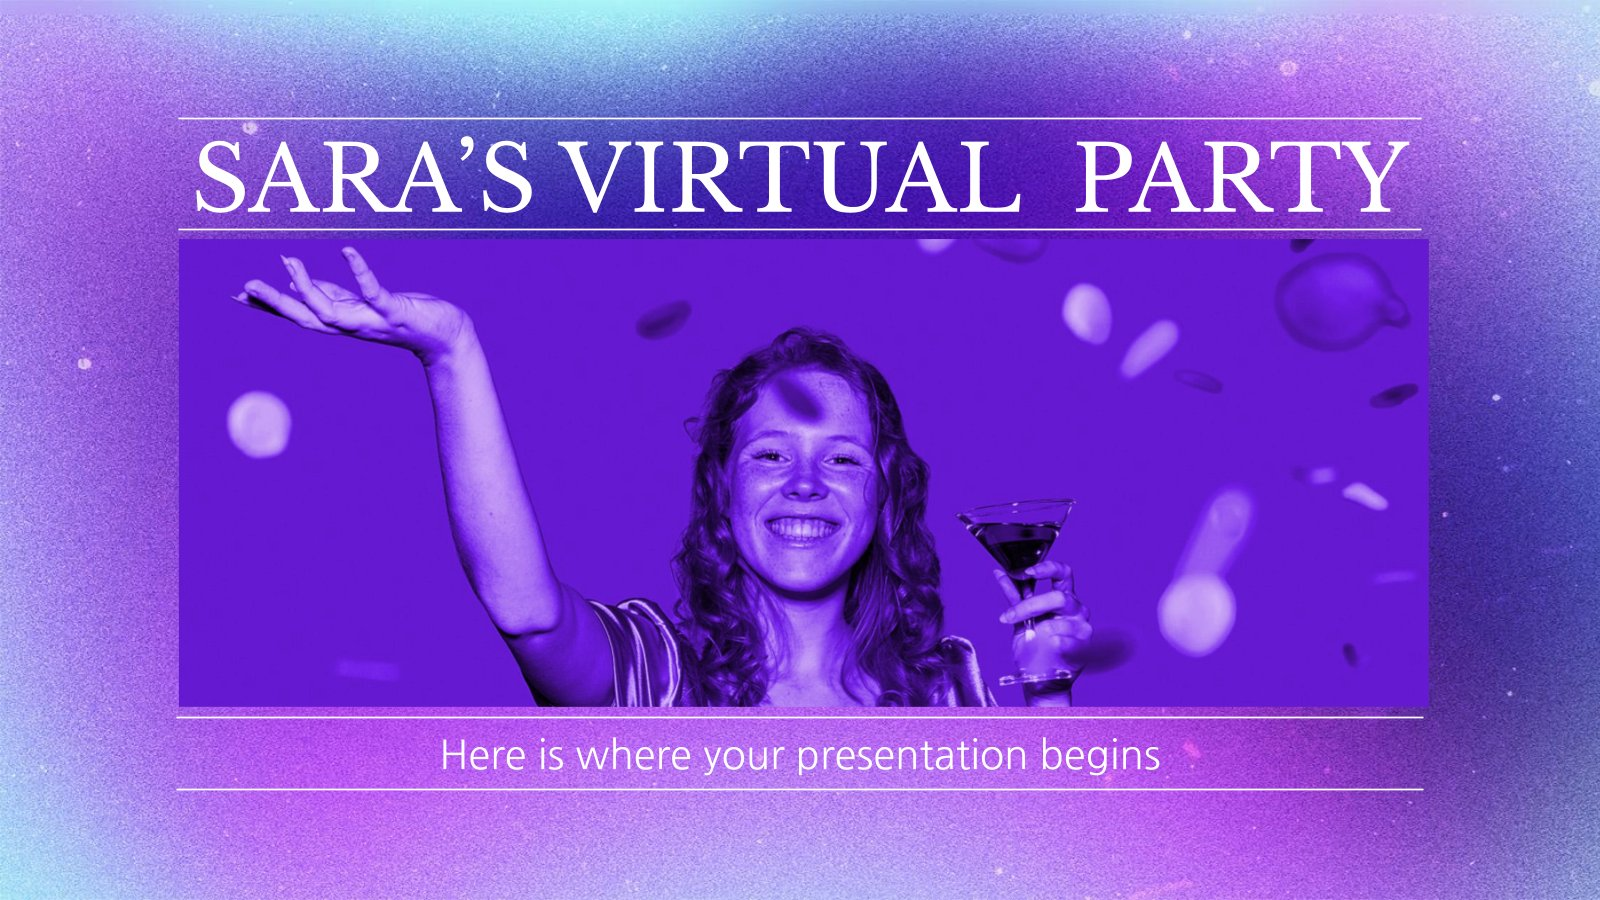 Sara's Virtual Party Social Media presentation template